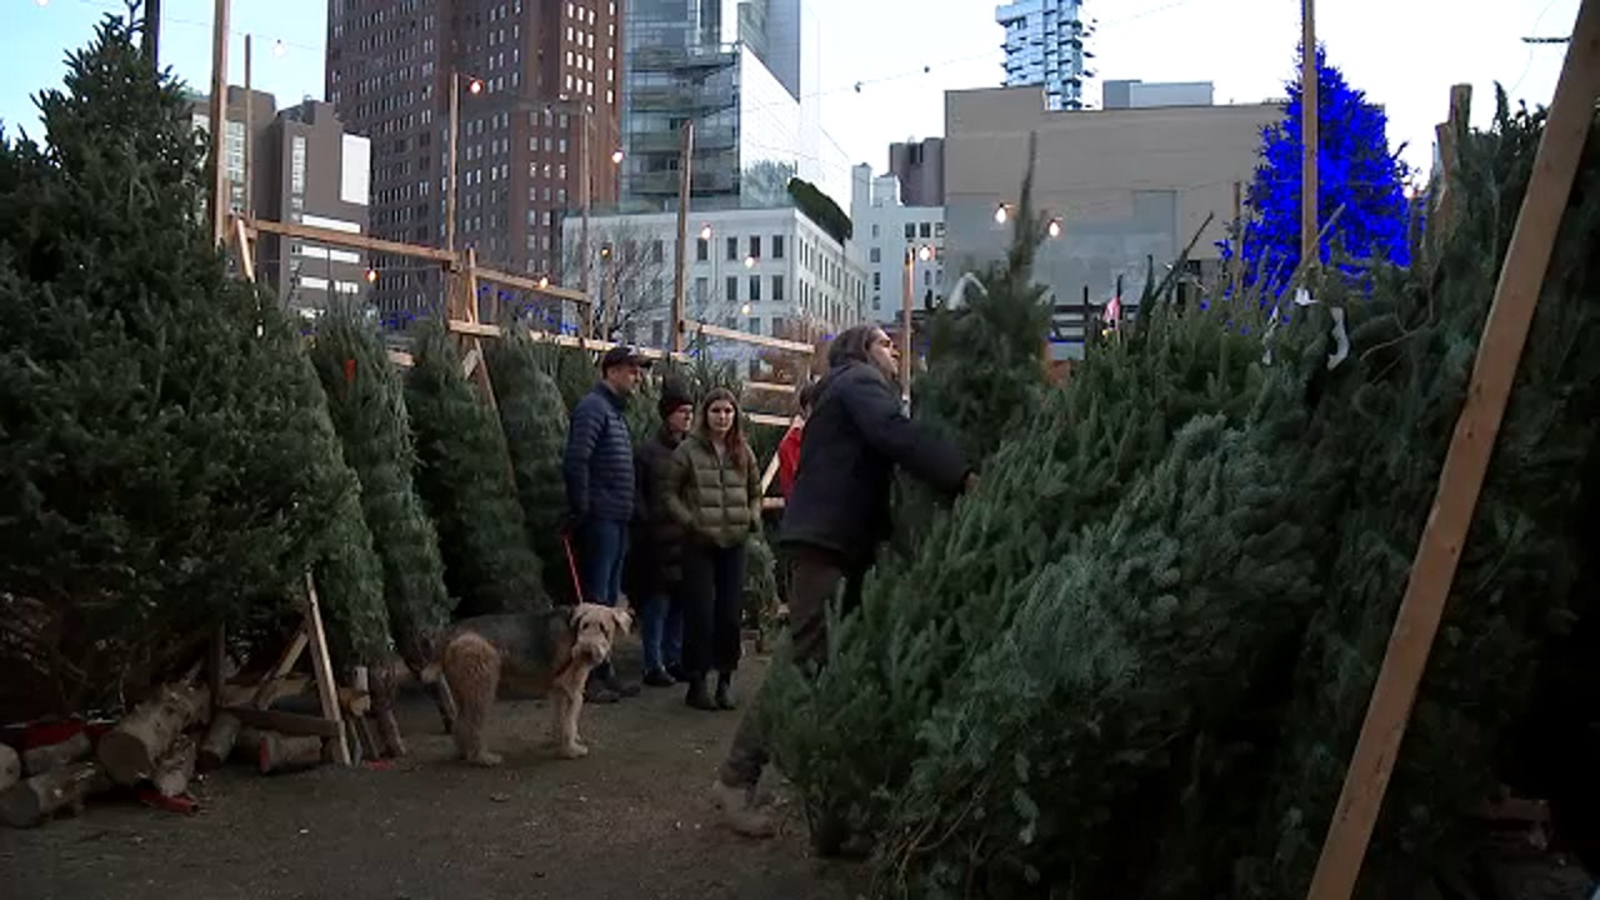 Tree vendor in SoHo selling 20-foot fir for $6,500